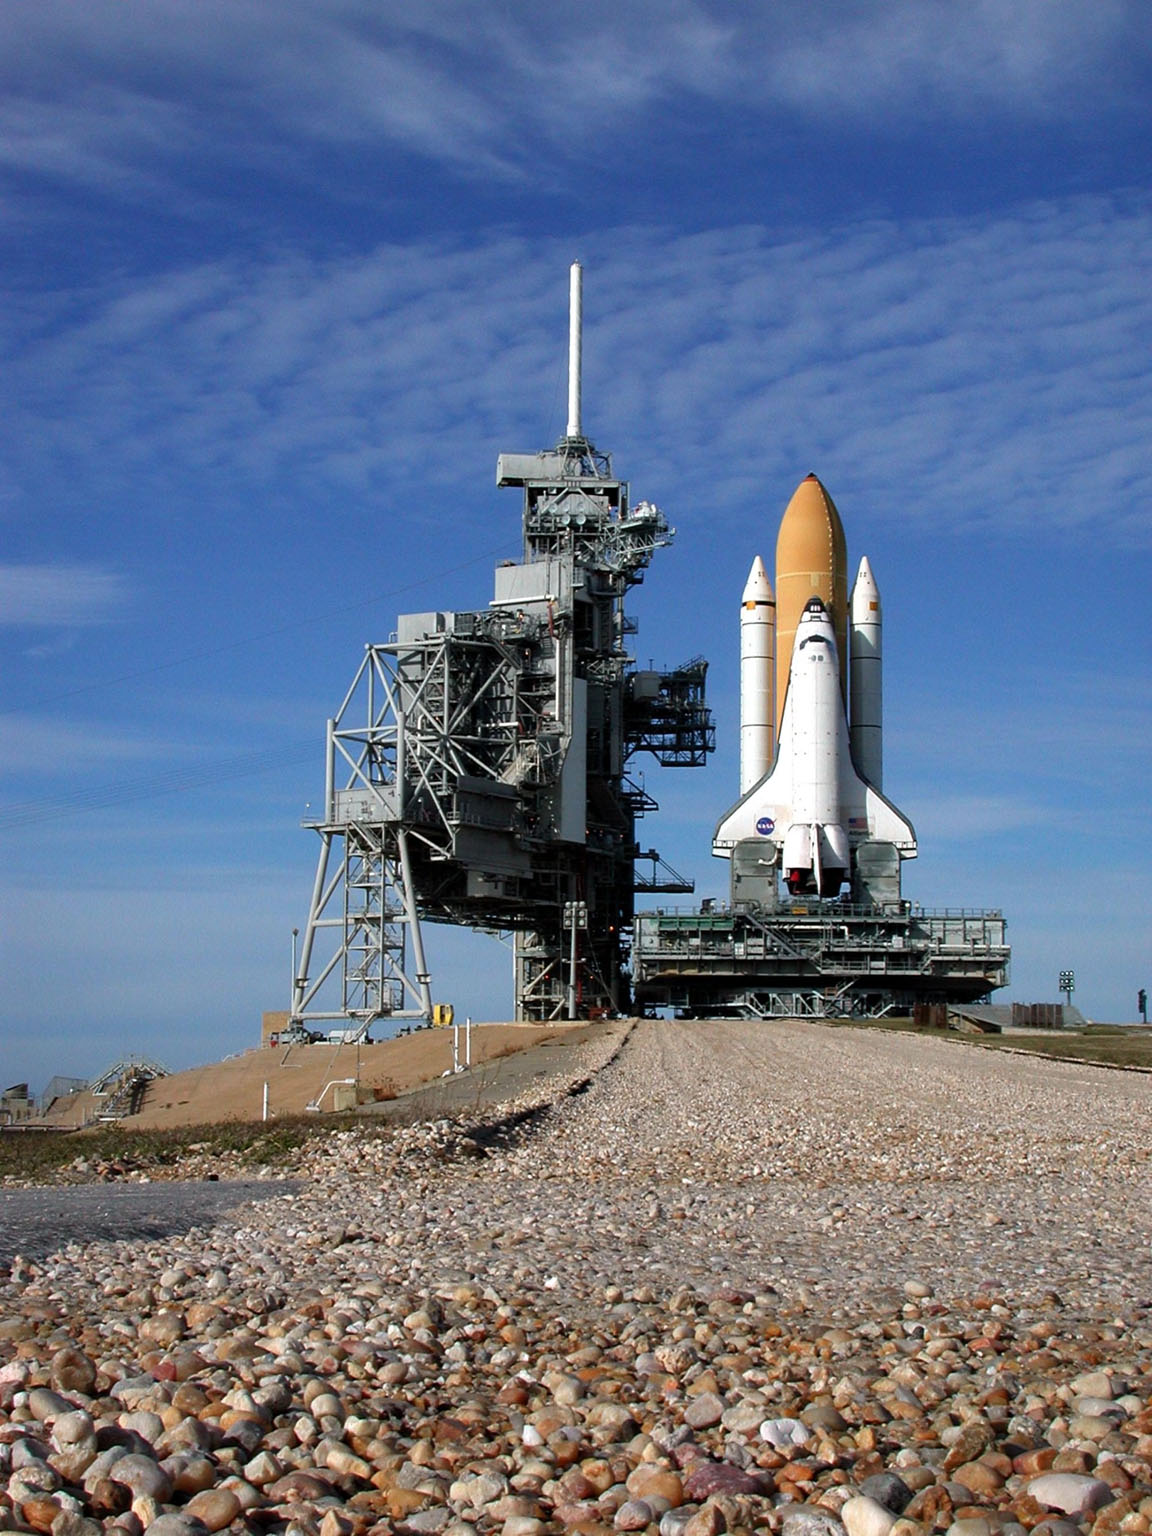 KENNEDY SPACE CENTER, Fla. -- At the top of the incline to Launch Pad 39A, Space Shuttle Atlantis nears the Rotating Service Structure (left). Atlantis will fly on mission STS-98, the seventh construction flight to the International Space Station, carrying the U.S. Laboratory, named Destiny. The lab will have five system racks already installed inside the module. After delivery of electronics in the lab, electrically powered attitude control for Control Moment Gyroscopes will be activated. Atlantis is scheduled for launch no earlier than Jan. 19, 2001, with a crew of five